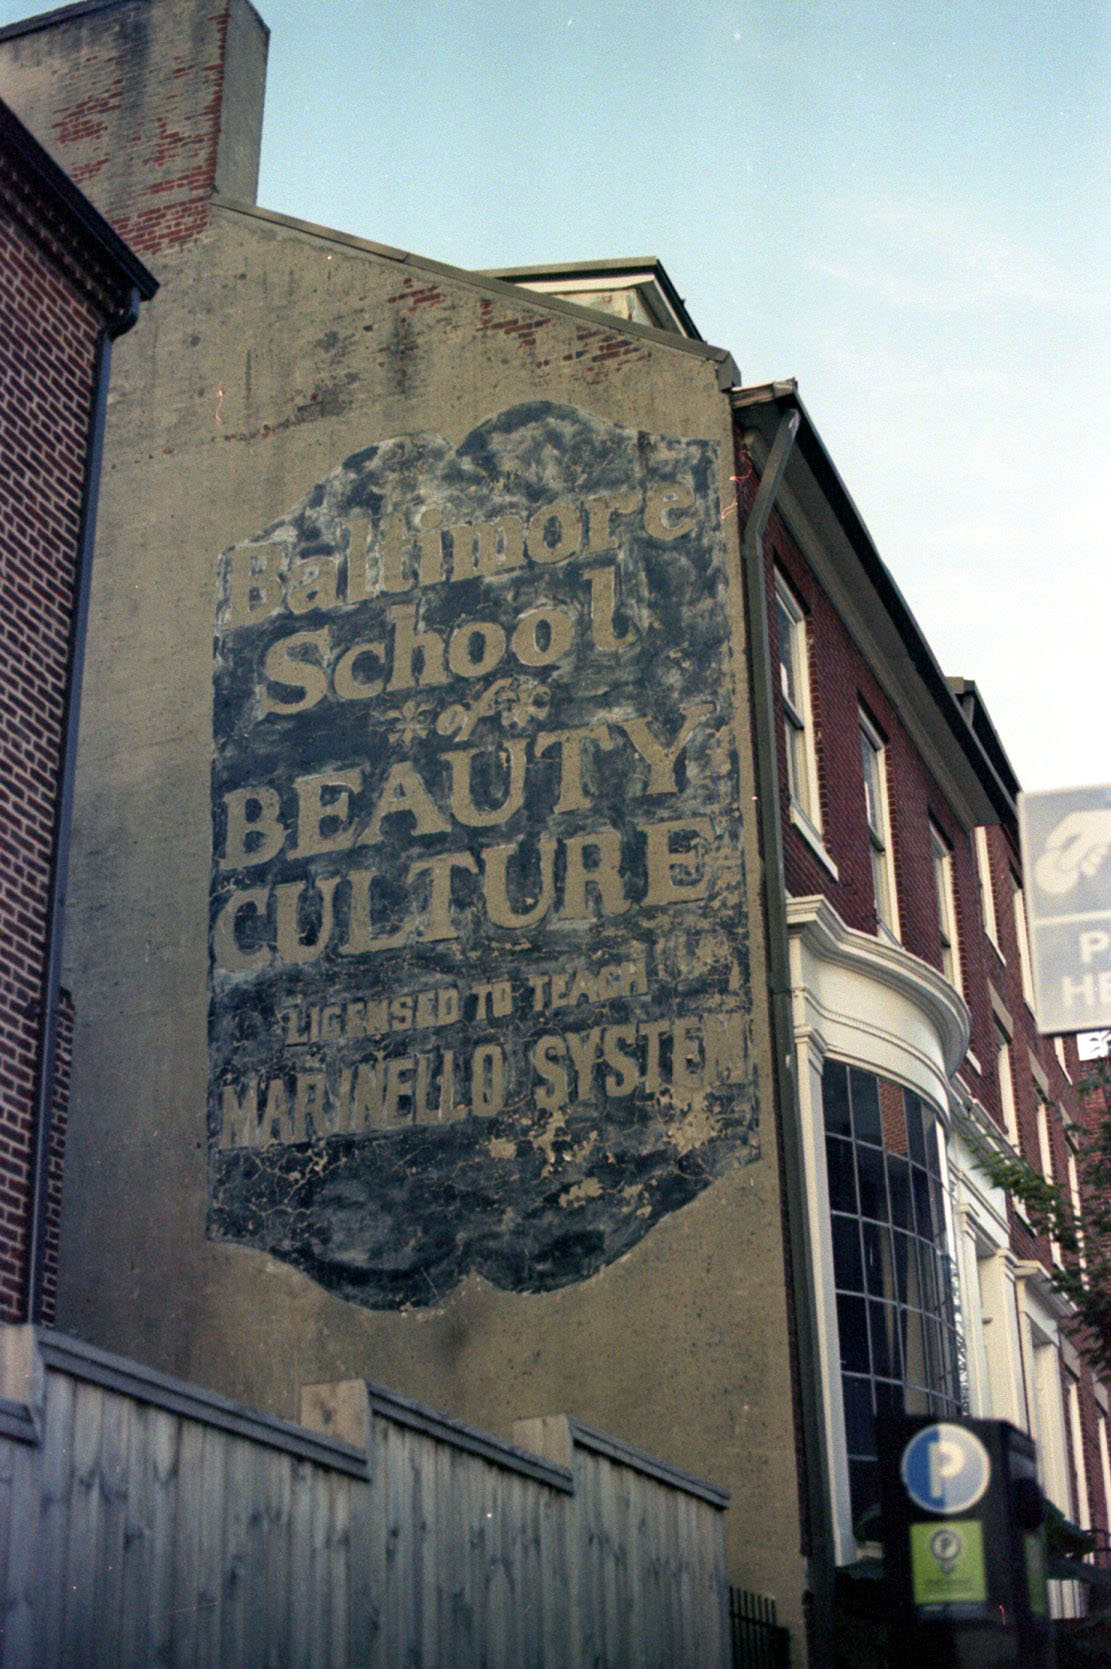 baltimore_school_of_beauty_28486267603_o.jpg